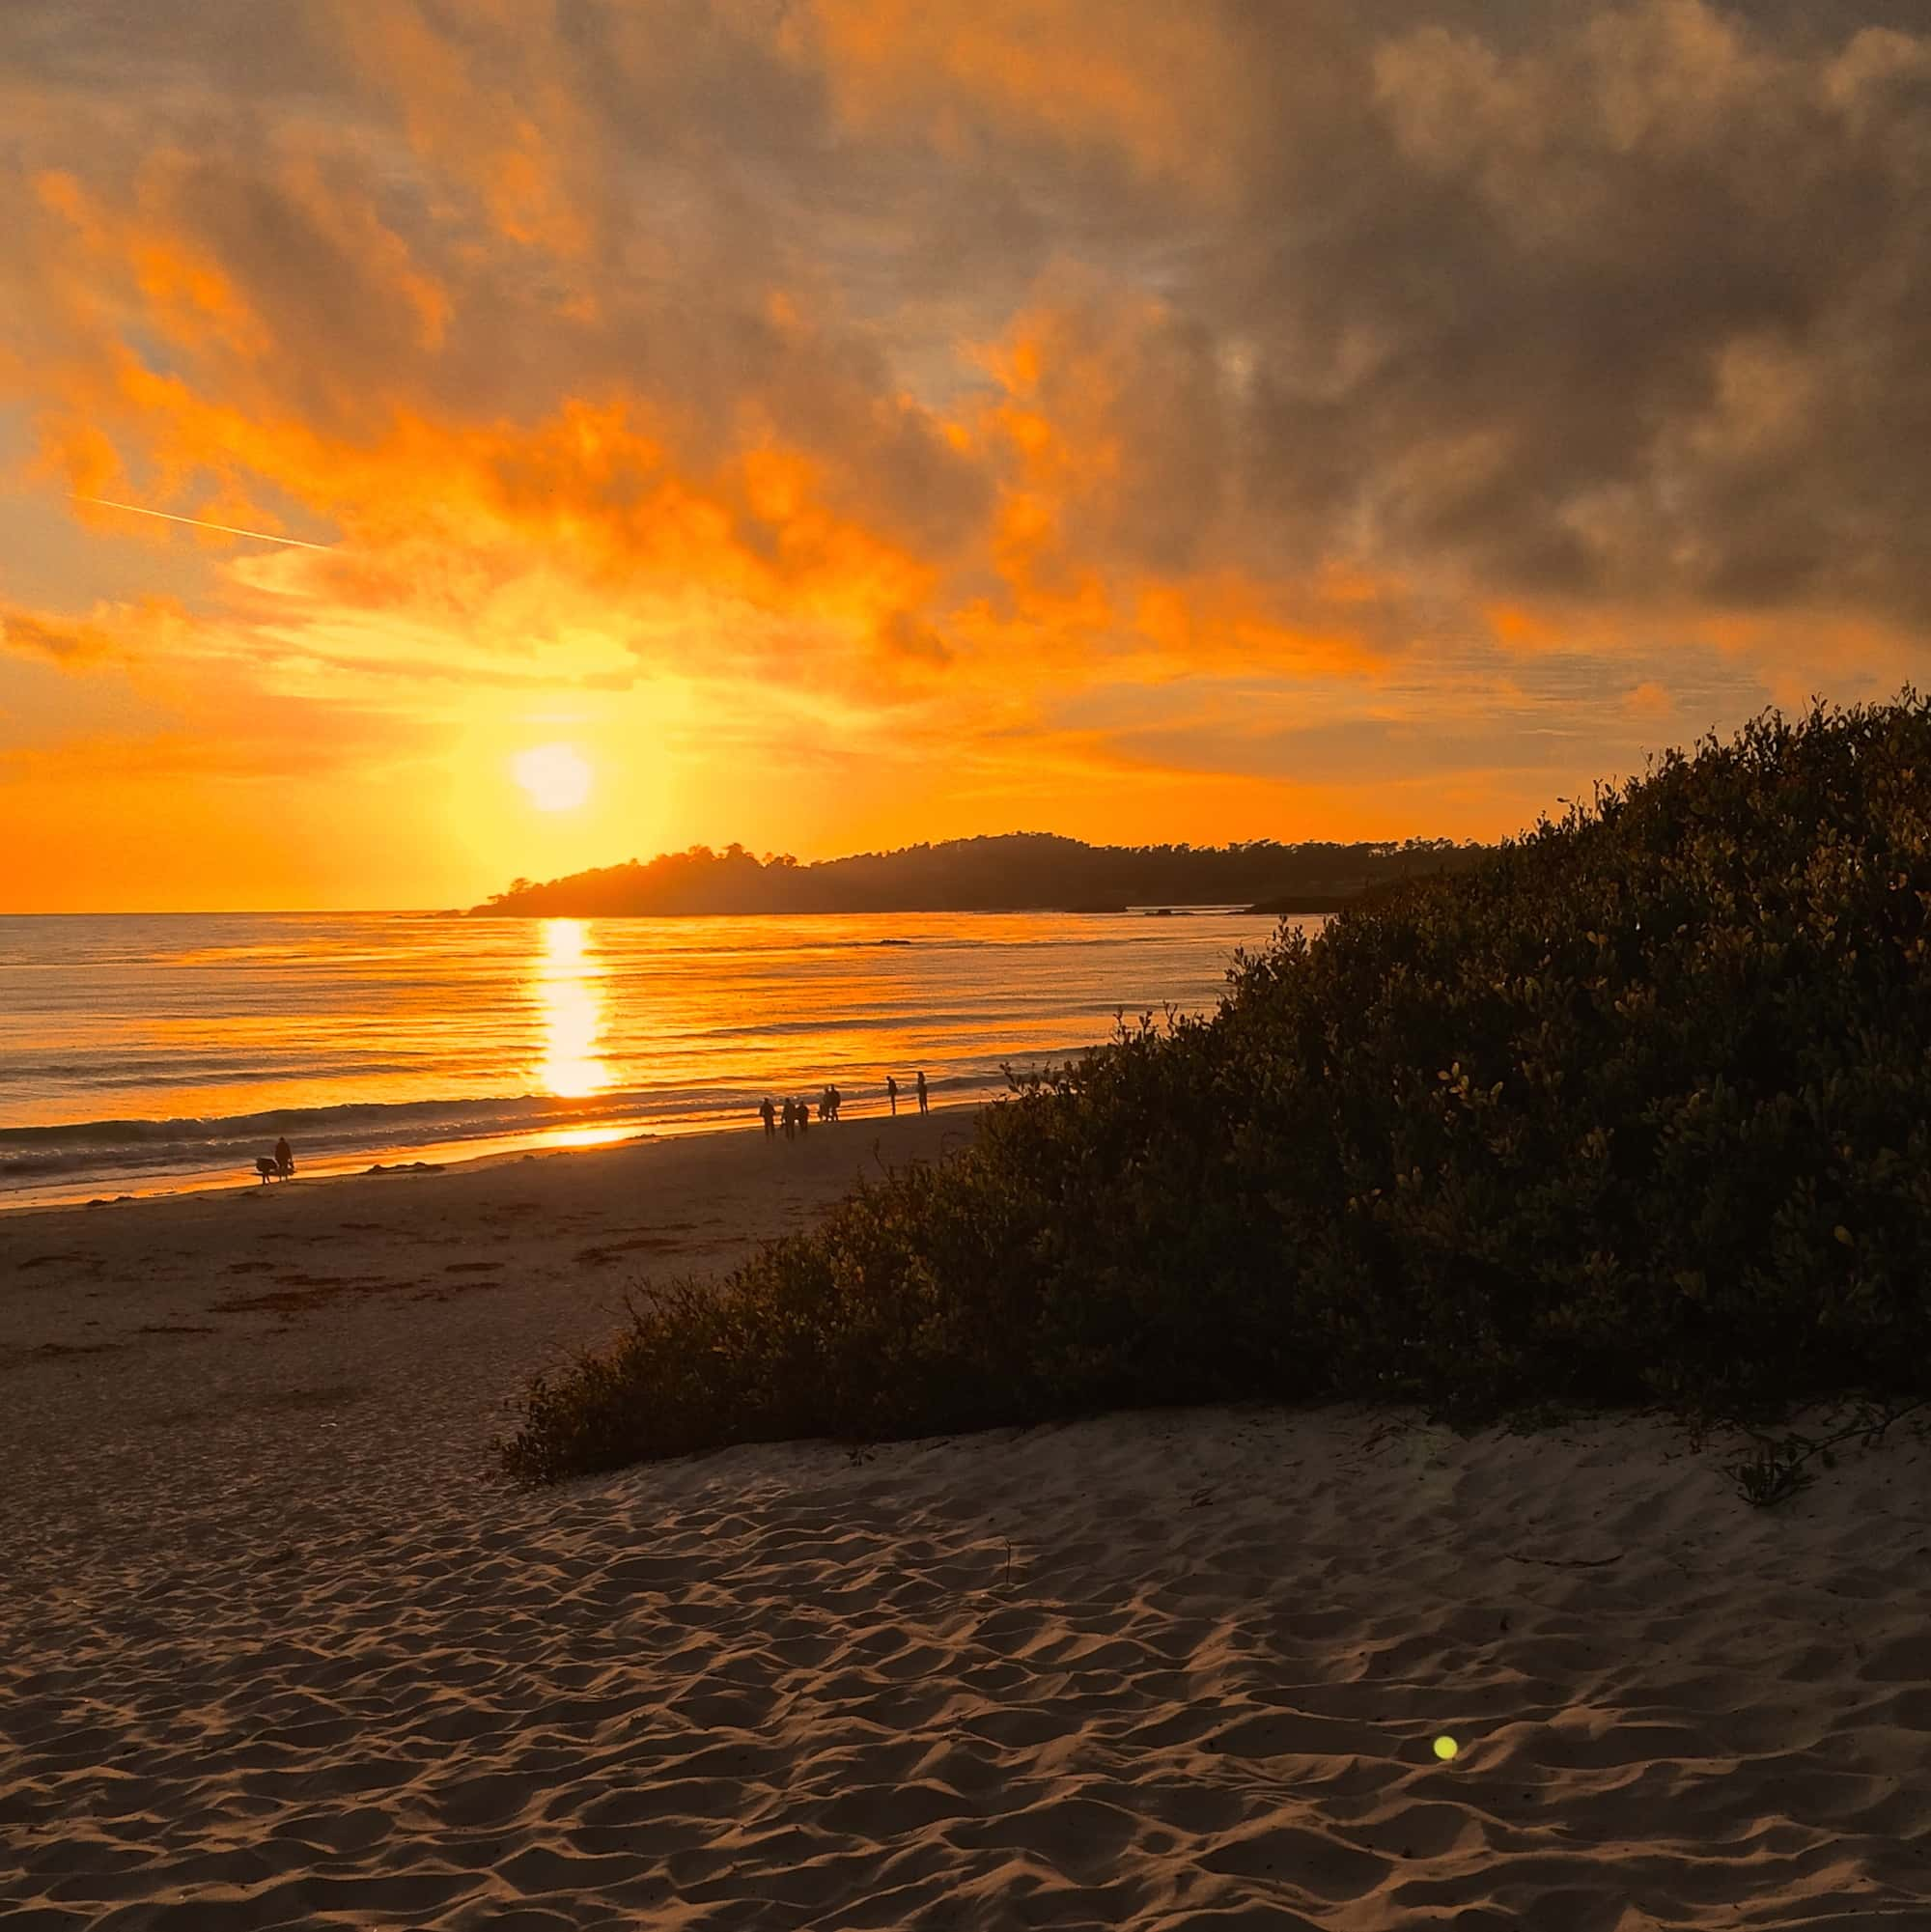 Sunset at Carmel-by-the-Sea.